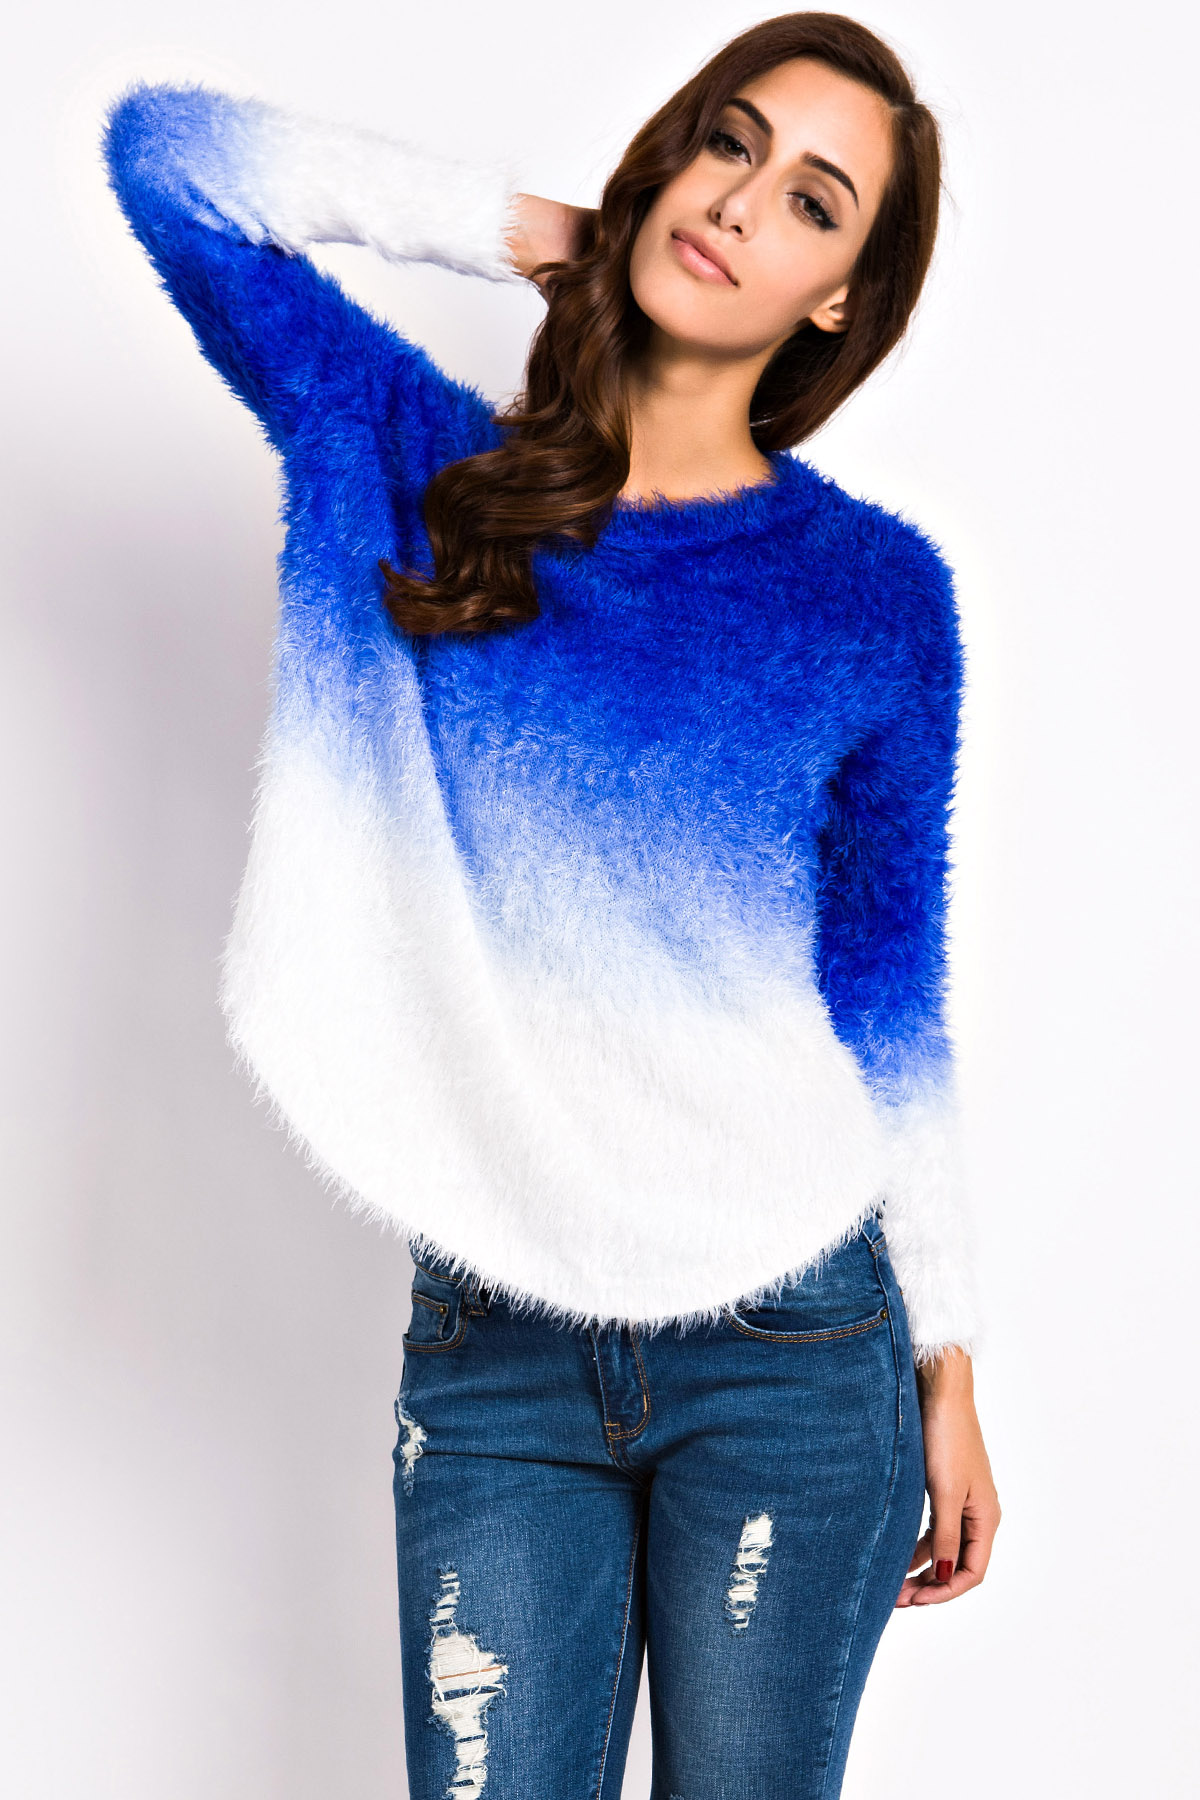 4-fashion-gradient-ramp-mohair-knit-sweater